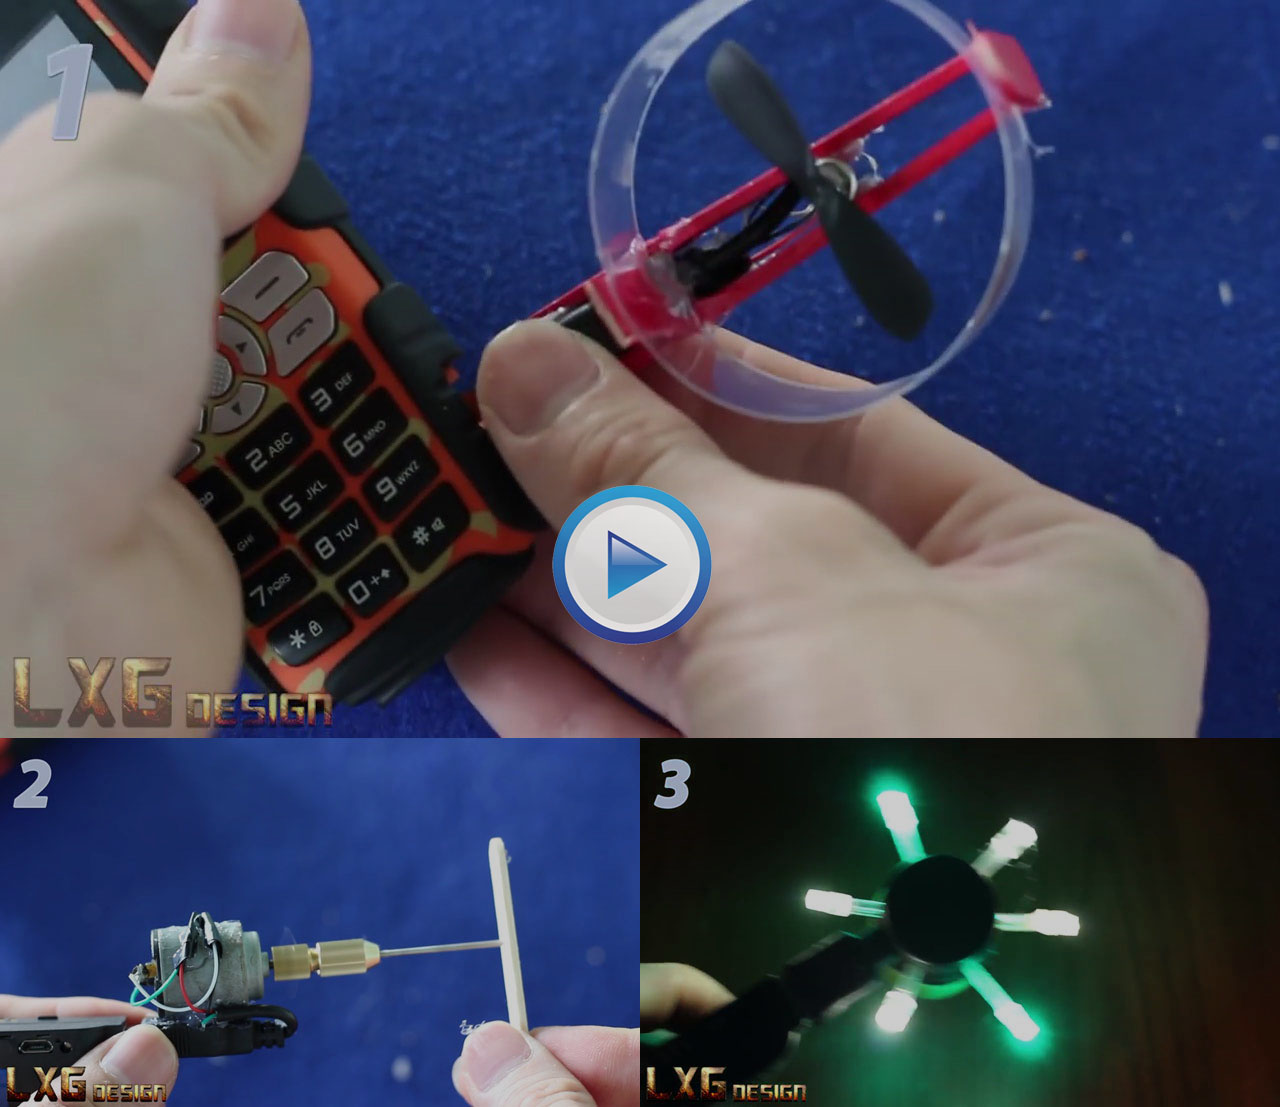 3 incredible USB gadgets you can make at home Video